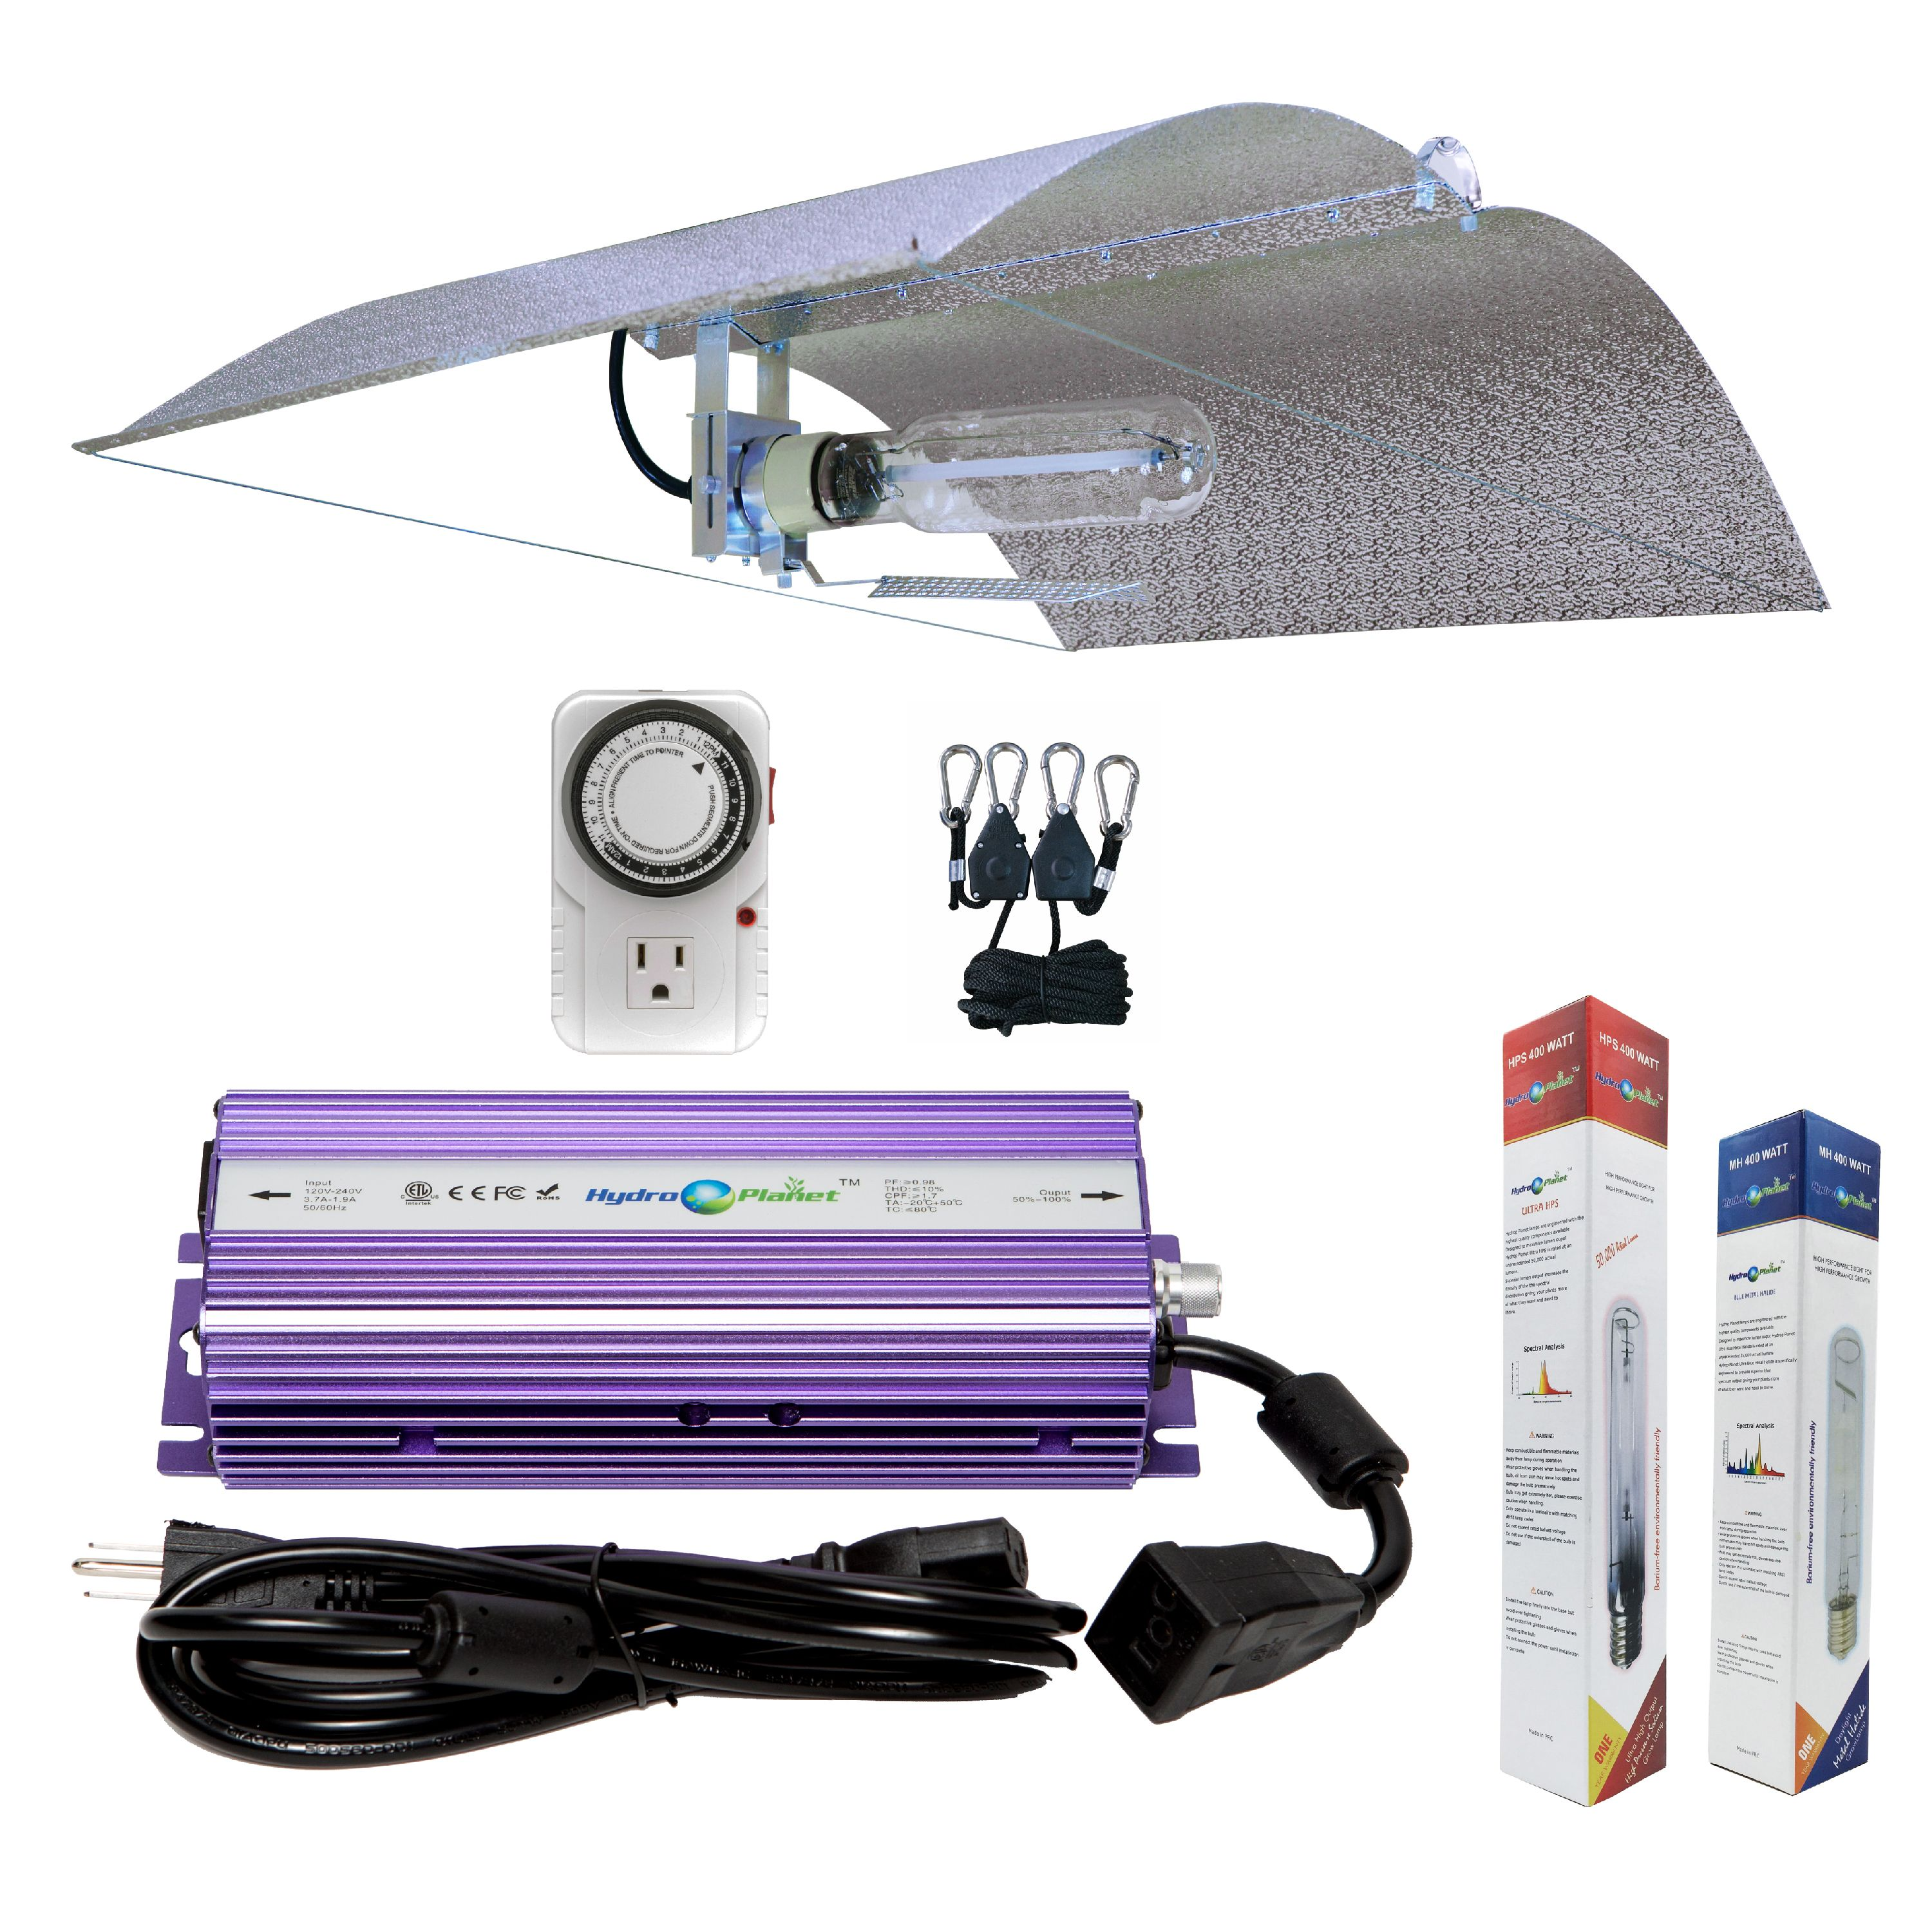 Hydroplanet™ 400w Digital Ballast Dimmable HPS Mh Grow Light System for Plant with Adjustable Wing Reflector